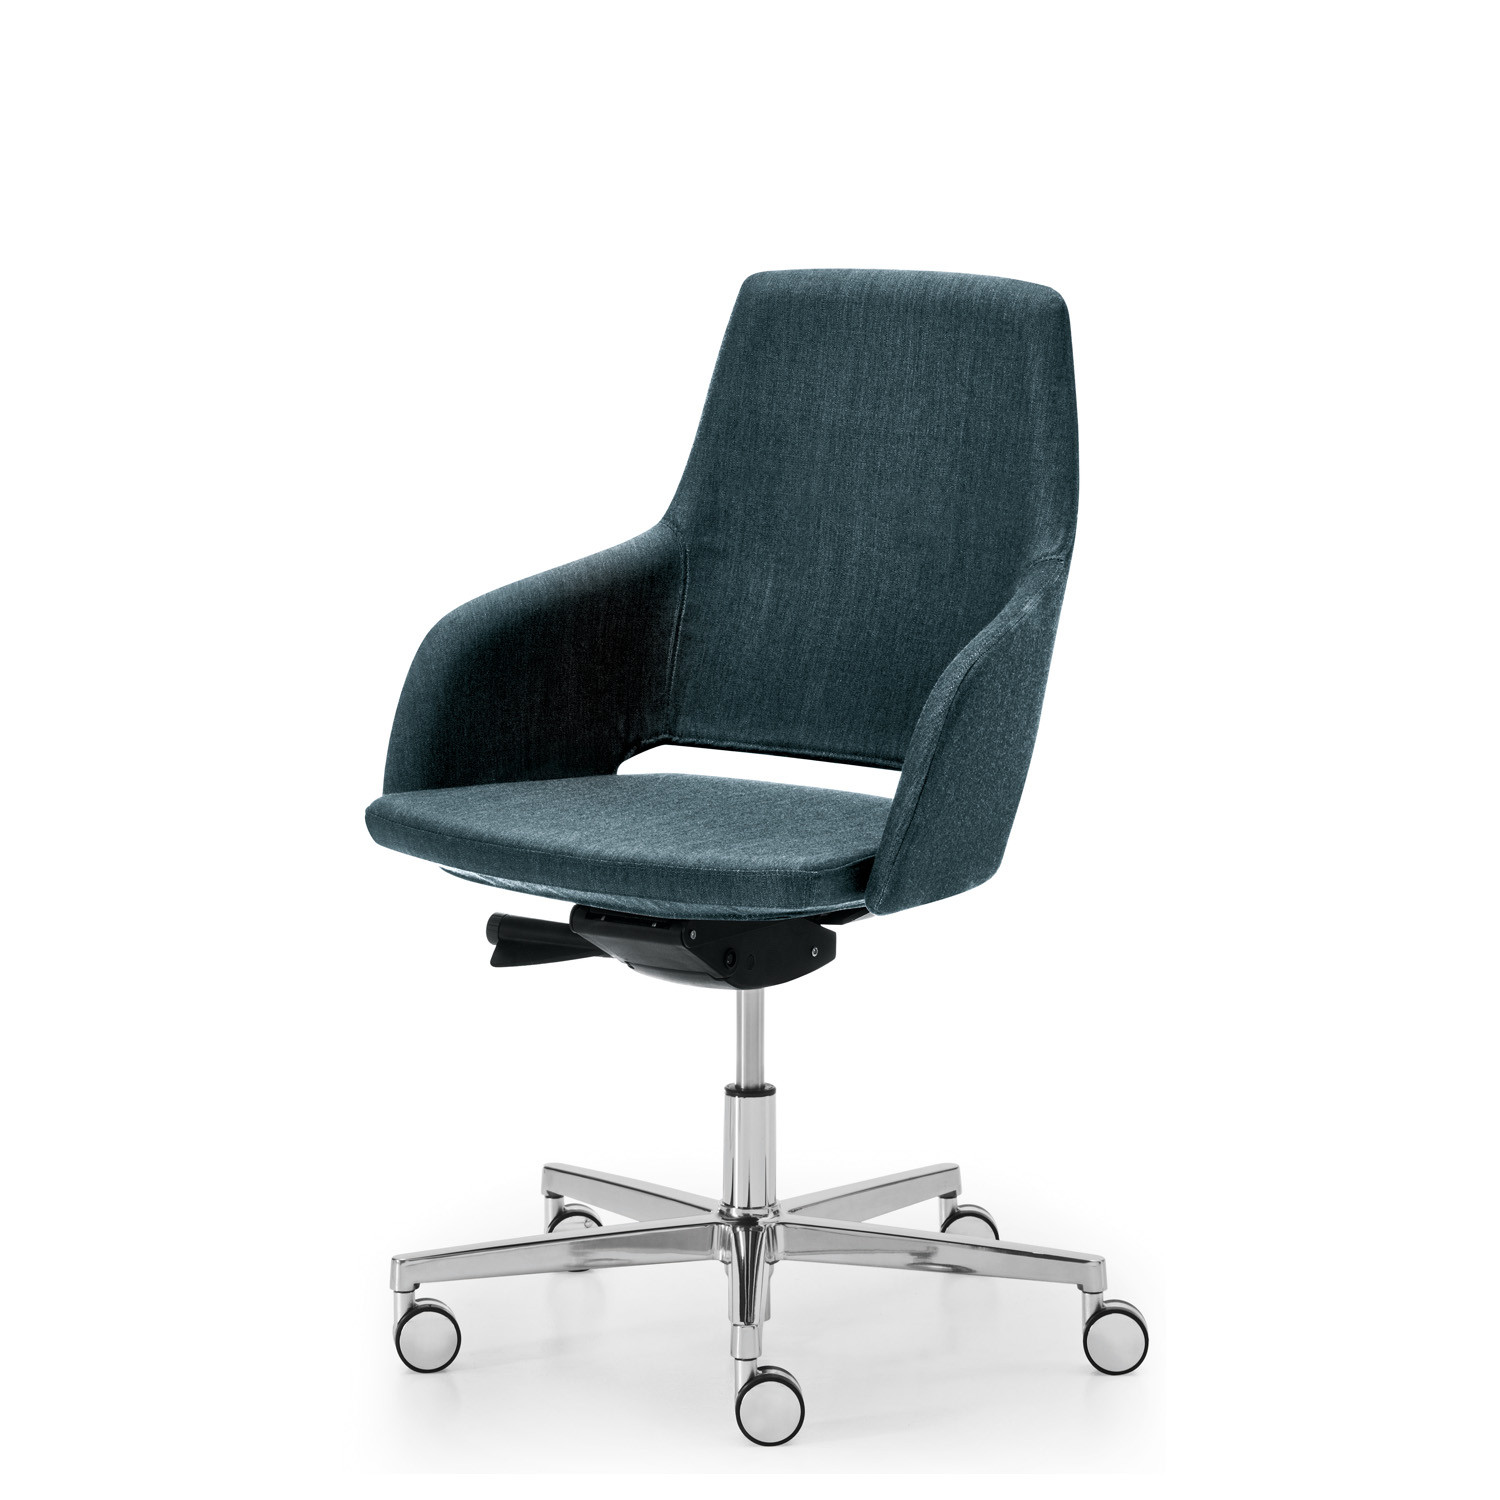 Captain Design Medium High Backrest